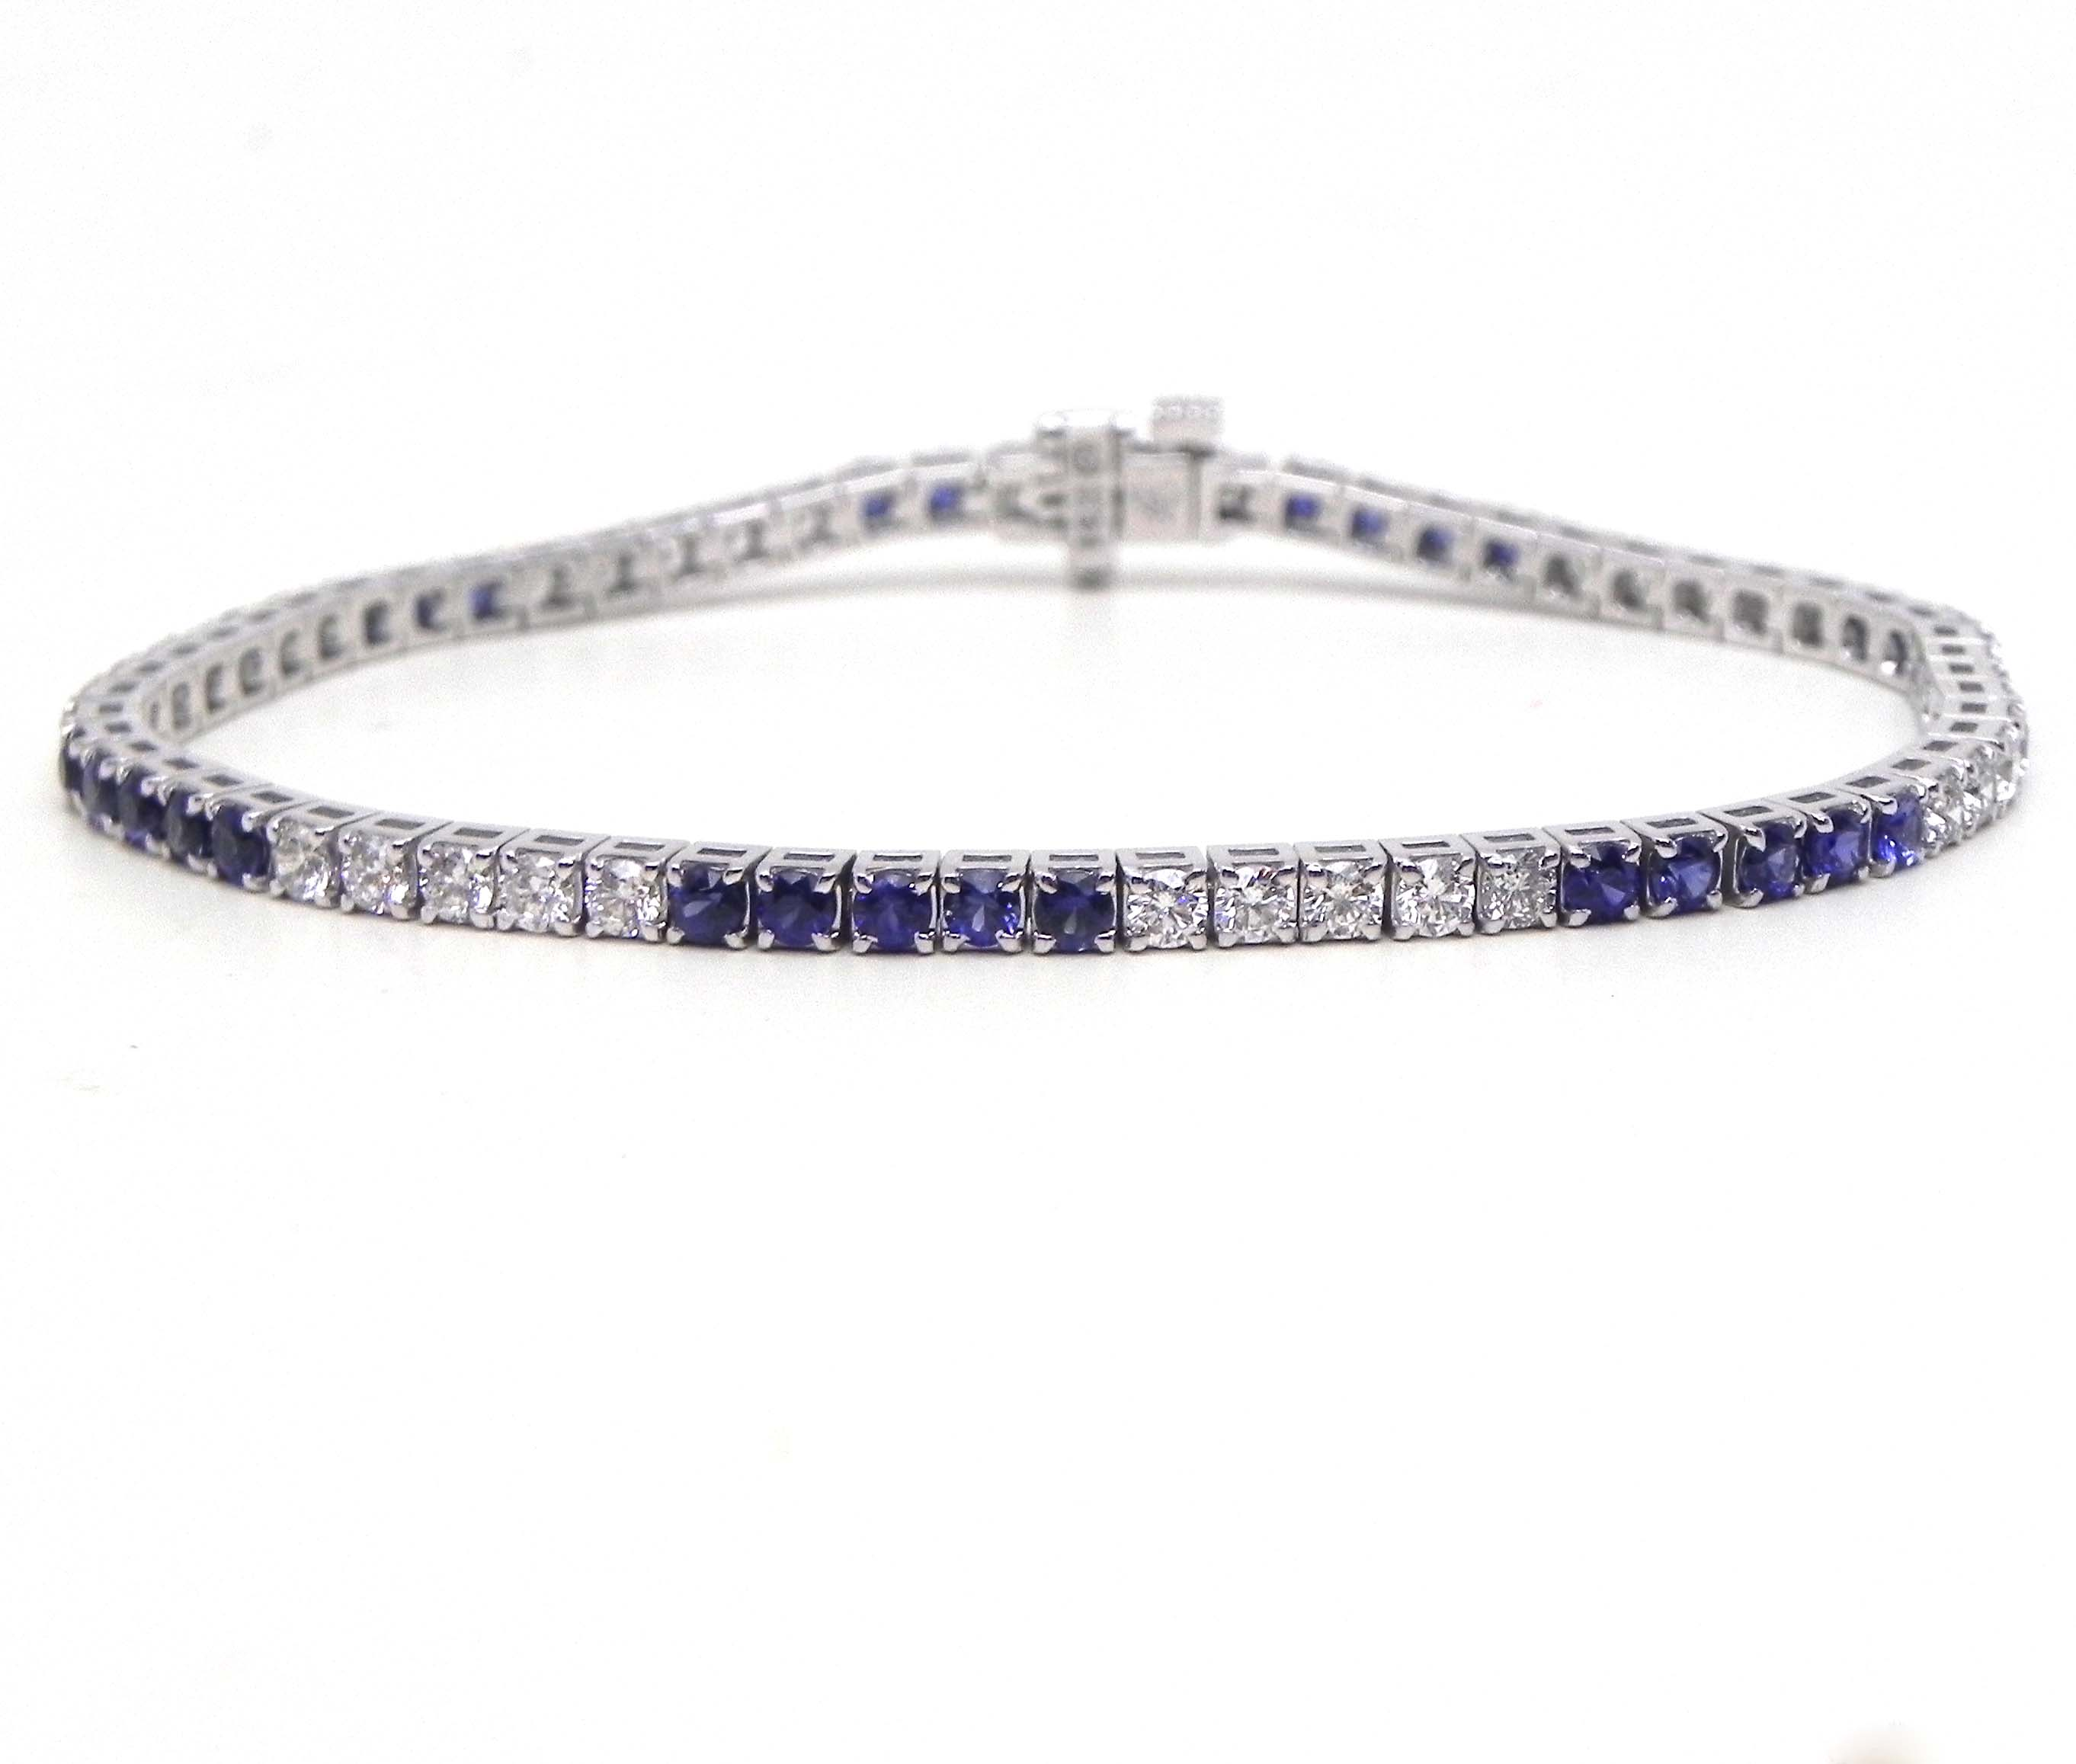 gabriel bracelet diamond gold white and sapphire fashion bracelets bangles bangle